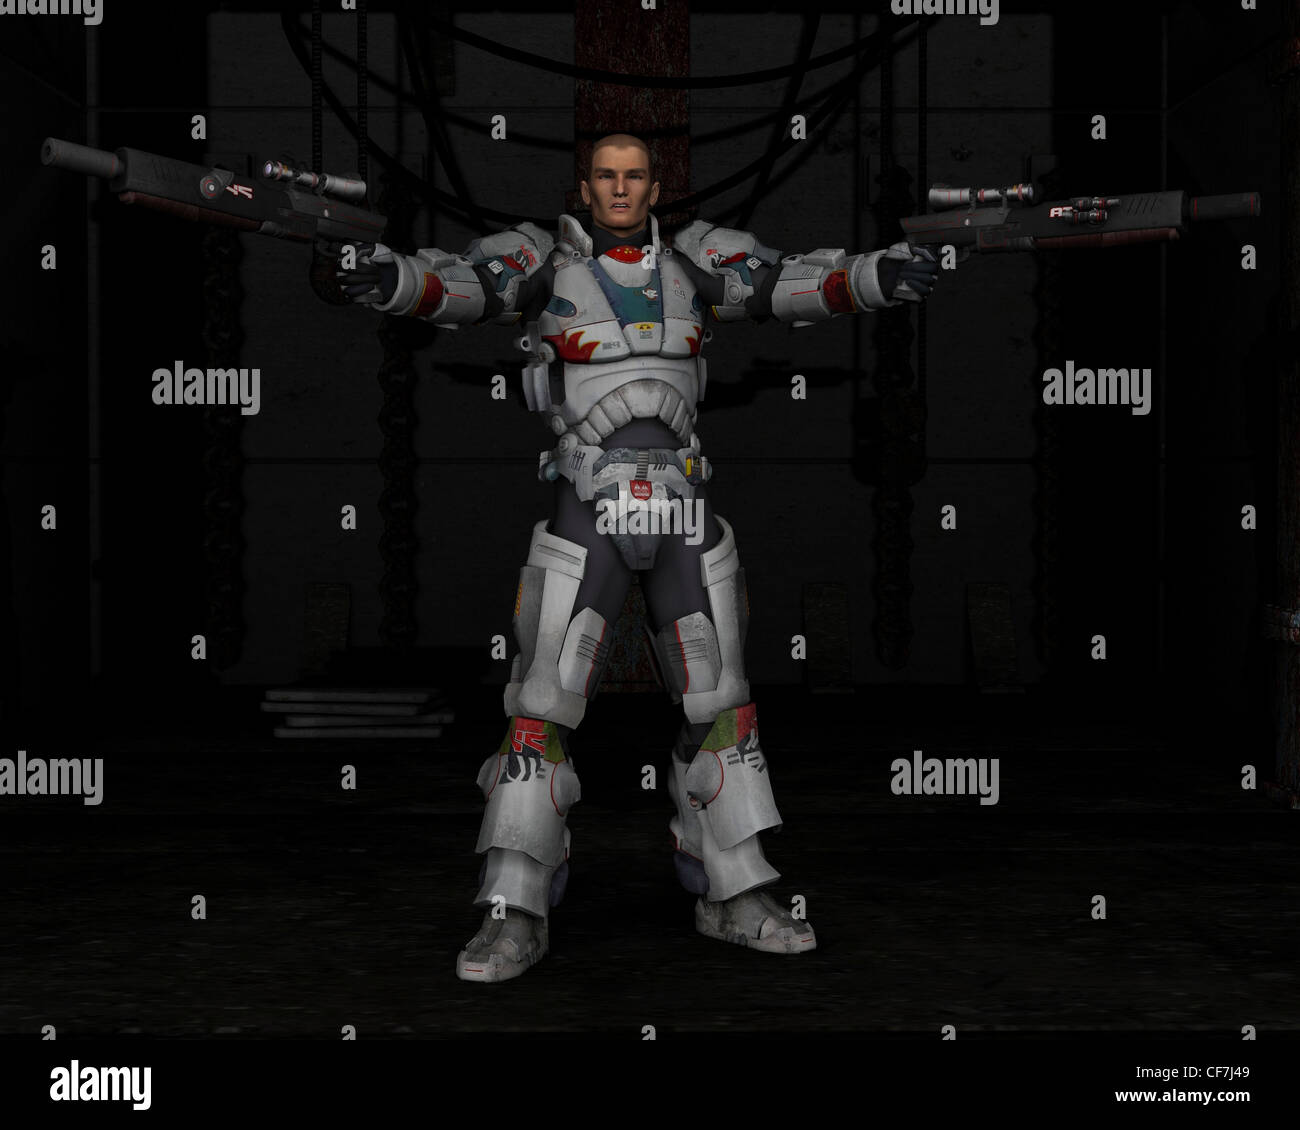 Space Marine with Dark Industrial Background - Stock Image